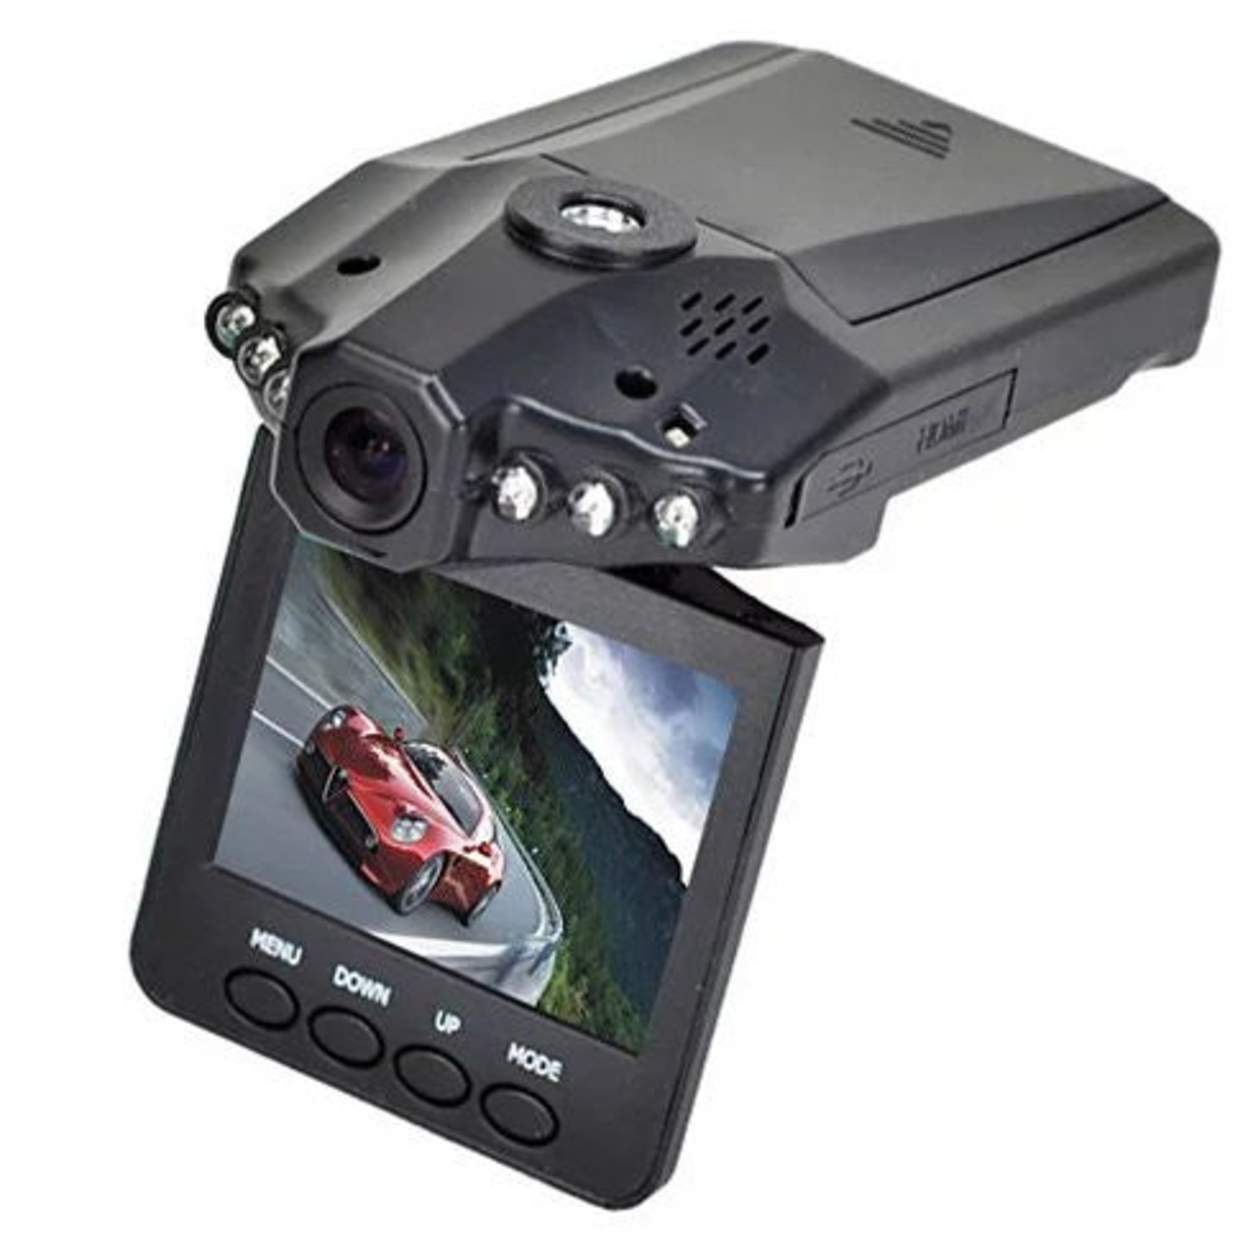 Gypsy Dash CAM The Wireless Dash Cam with night vision for your Car - Capture your scenic drive in this handy dash camera 53cb2dbbb1f964a5340002de